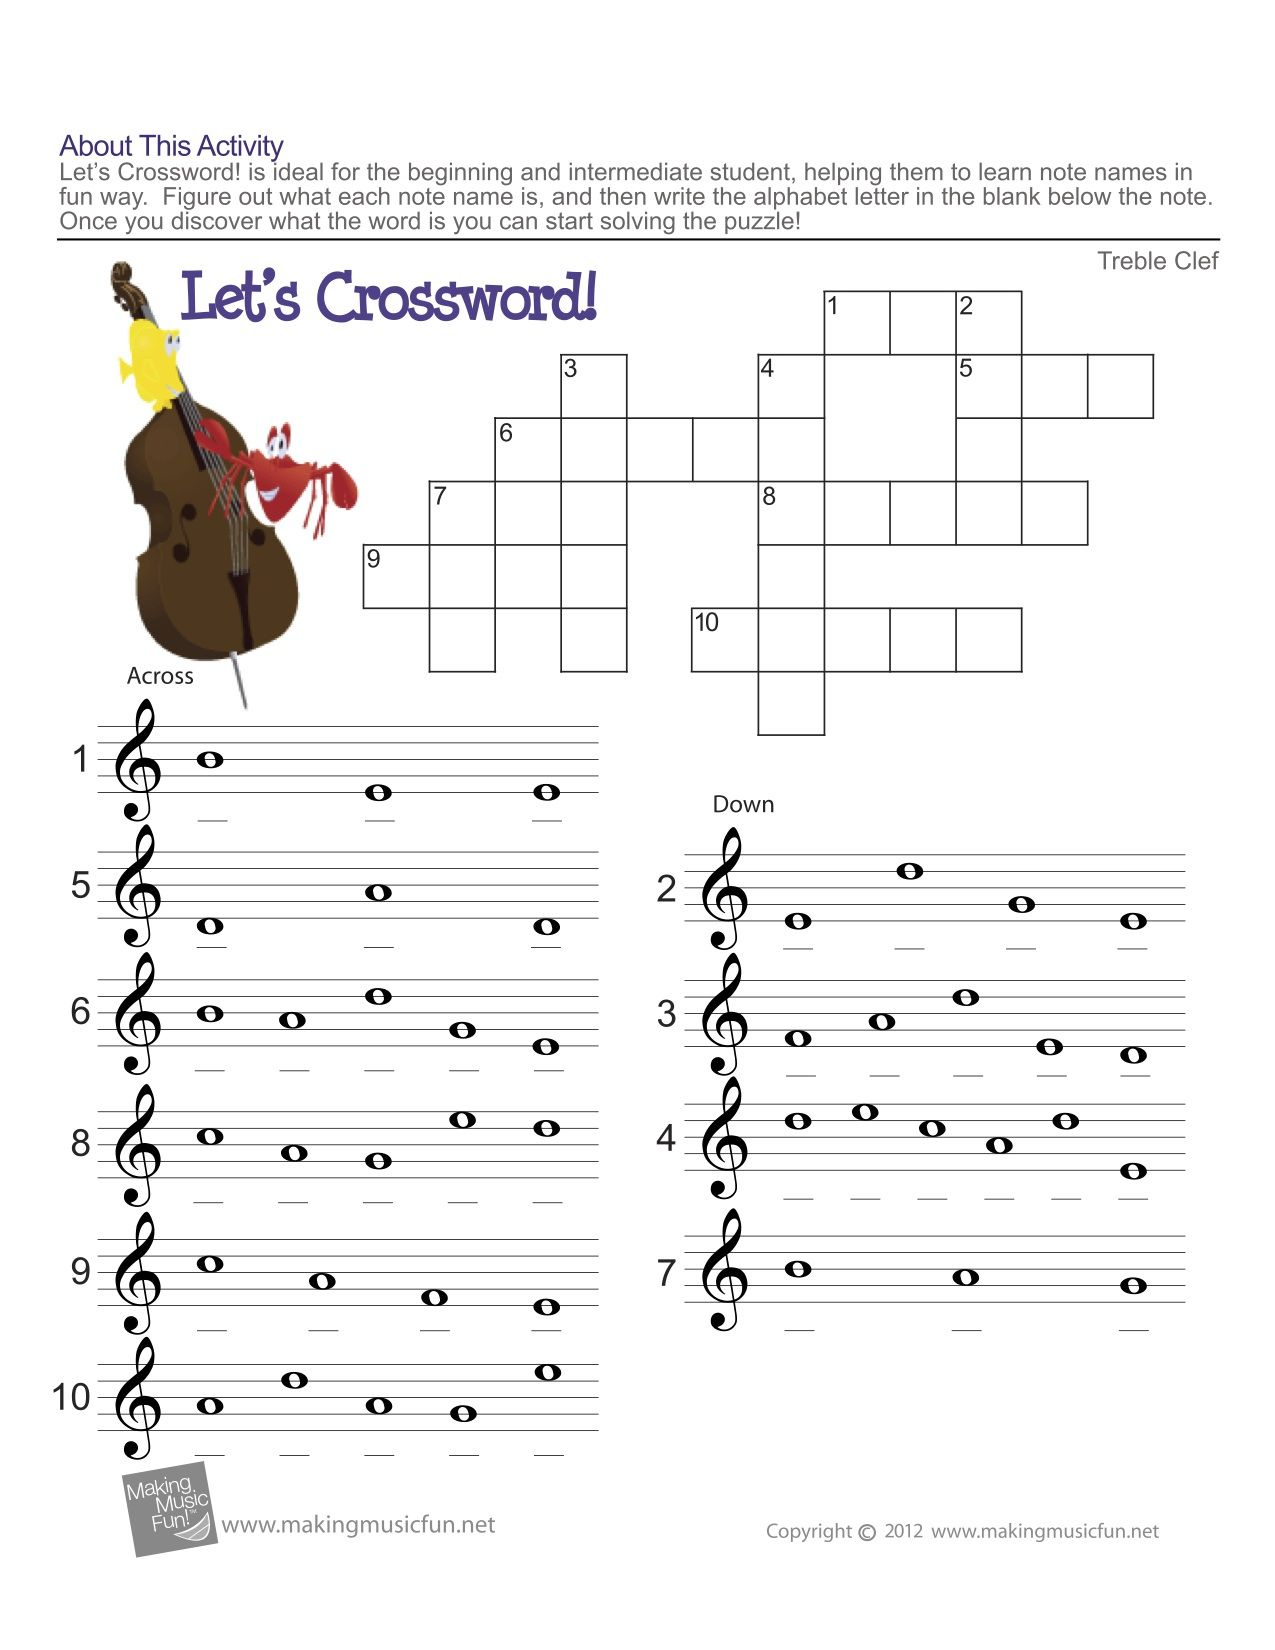 Treble Clef Fun Note Reading! | Easy Music Theory For Middle School | Reading Music Worksheets Printable